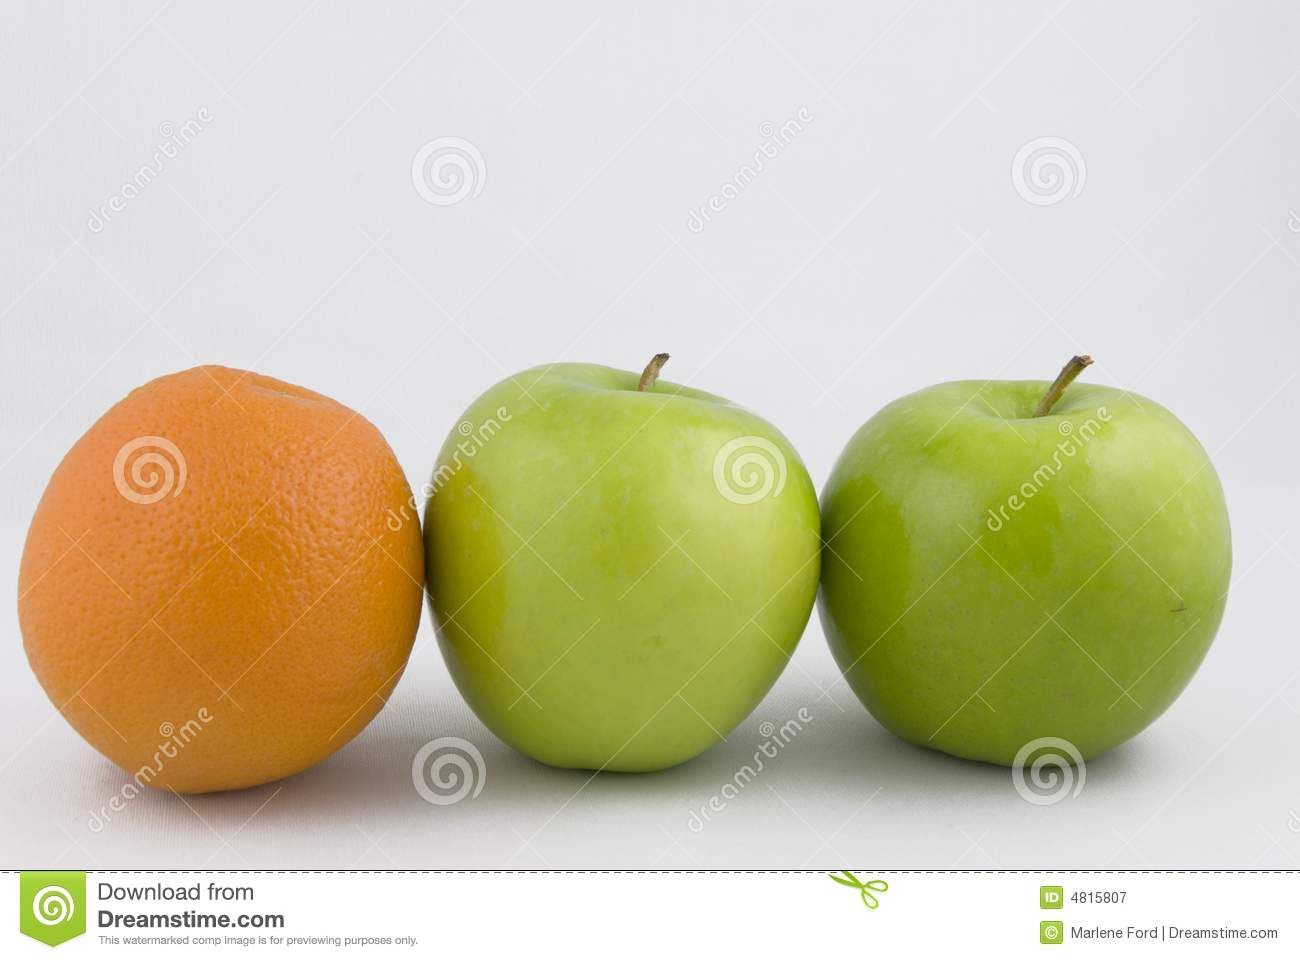 comparison essay on apples and oranges A short powerpoint which addresses the process of writing a compare & contrast essay by using apples and oranges.